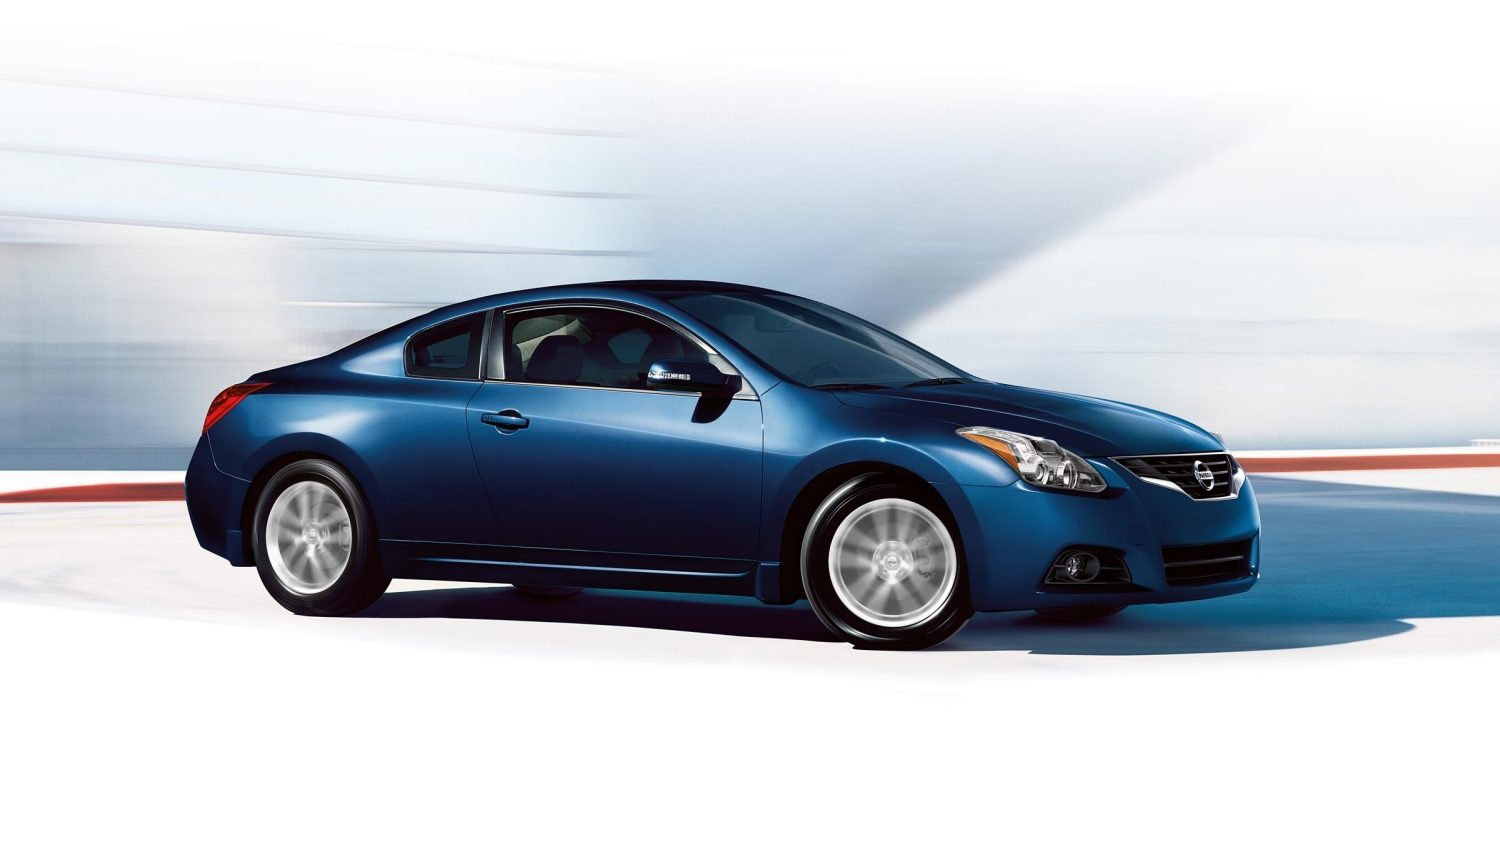 altima coupe 2 door coupe sedan cars nissan usa. Black Bedroom Furniture Sets. Home Design Ideas